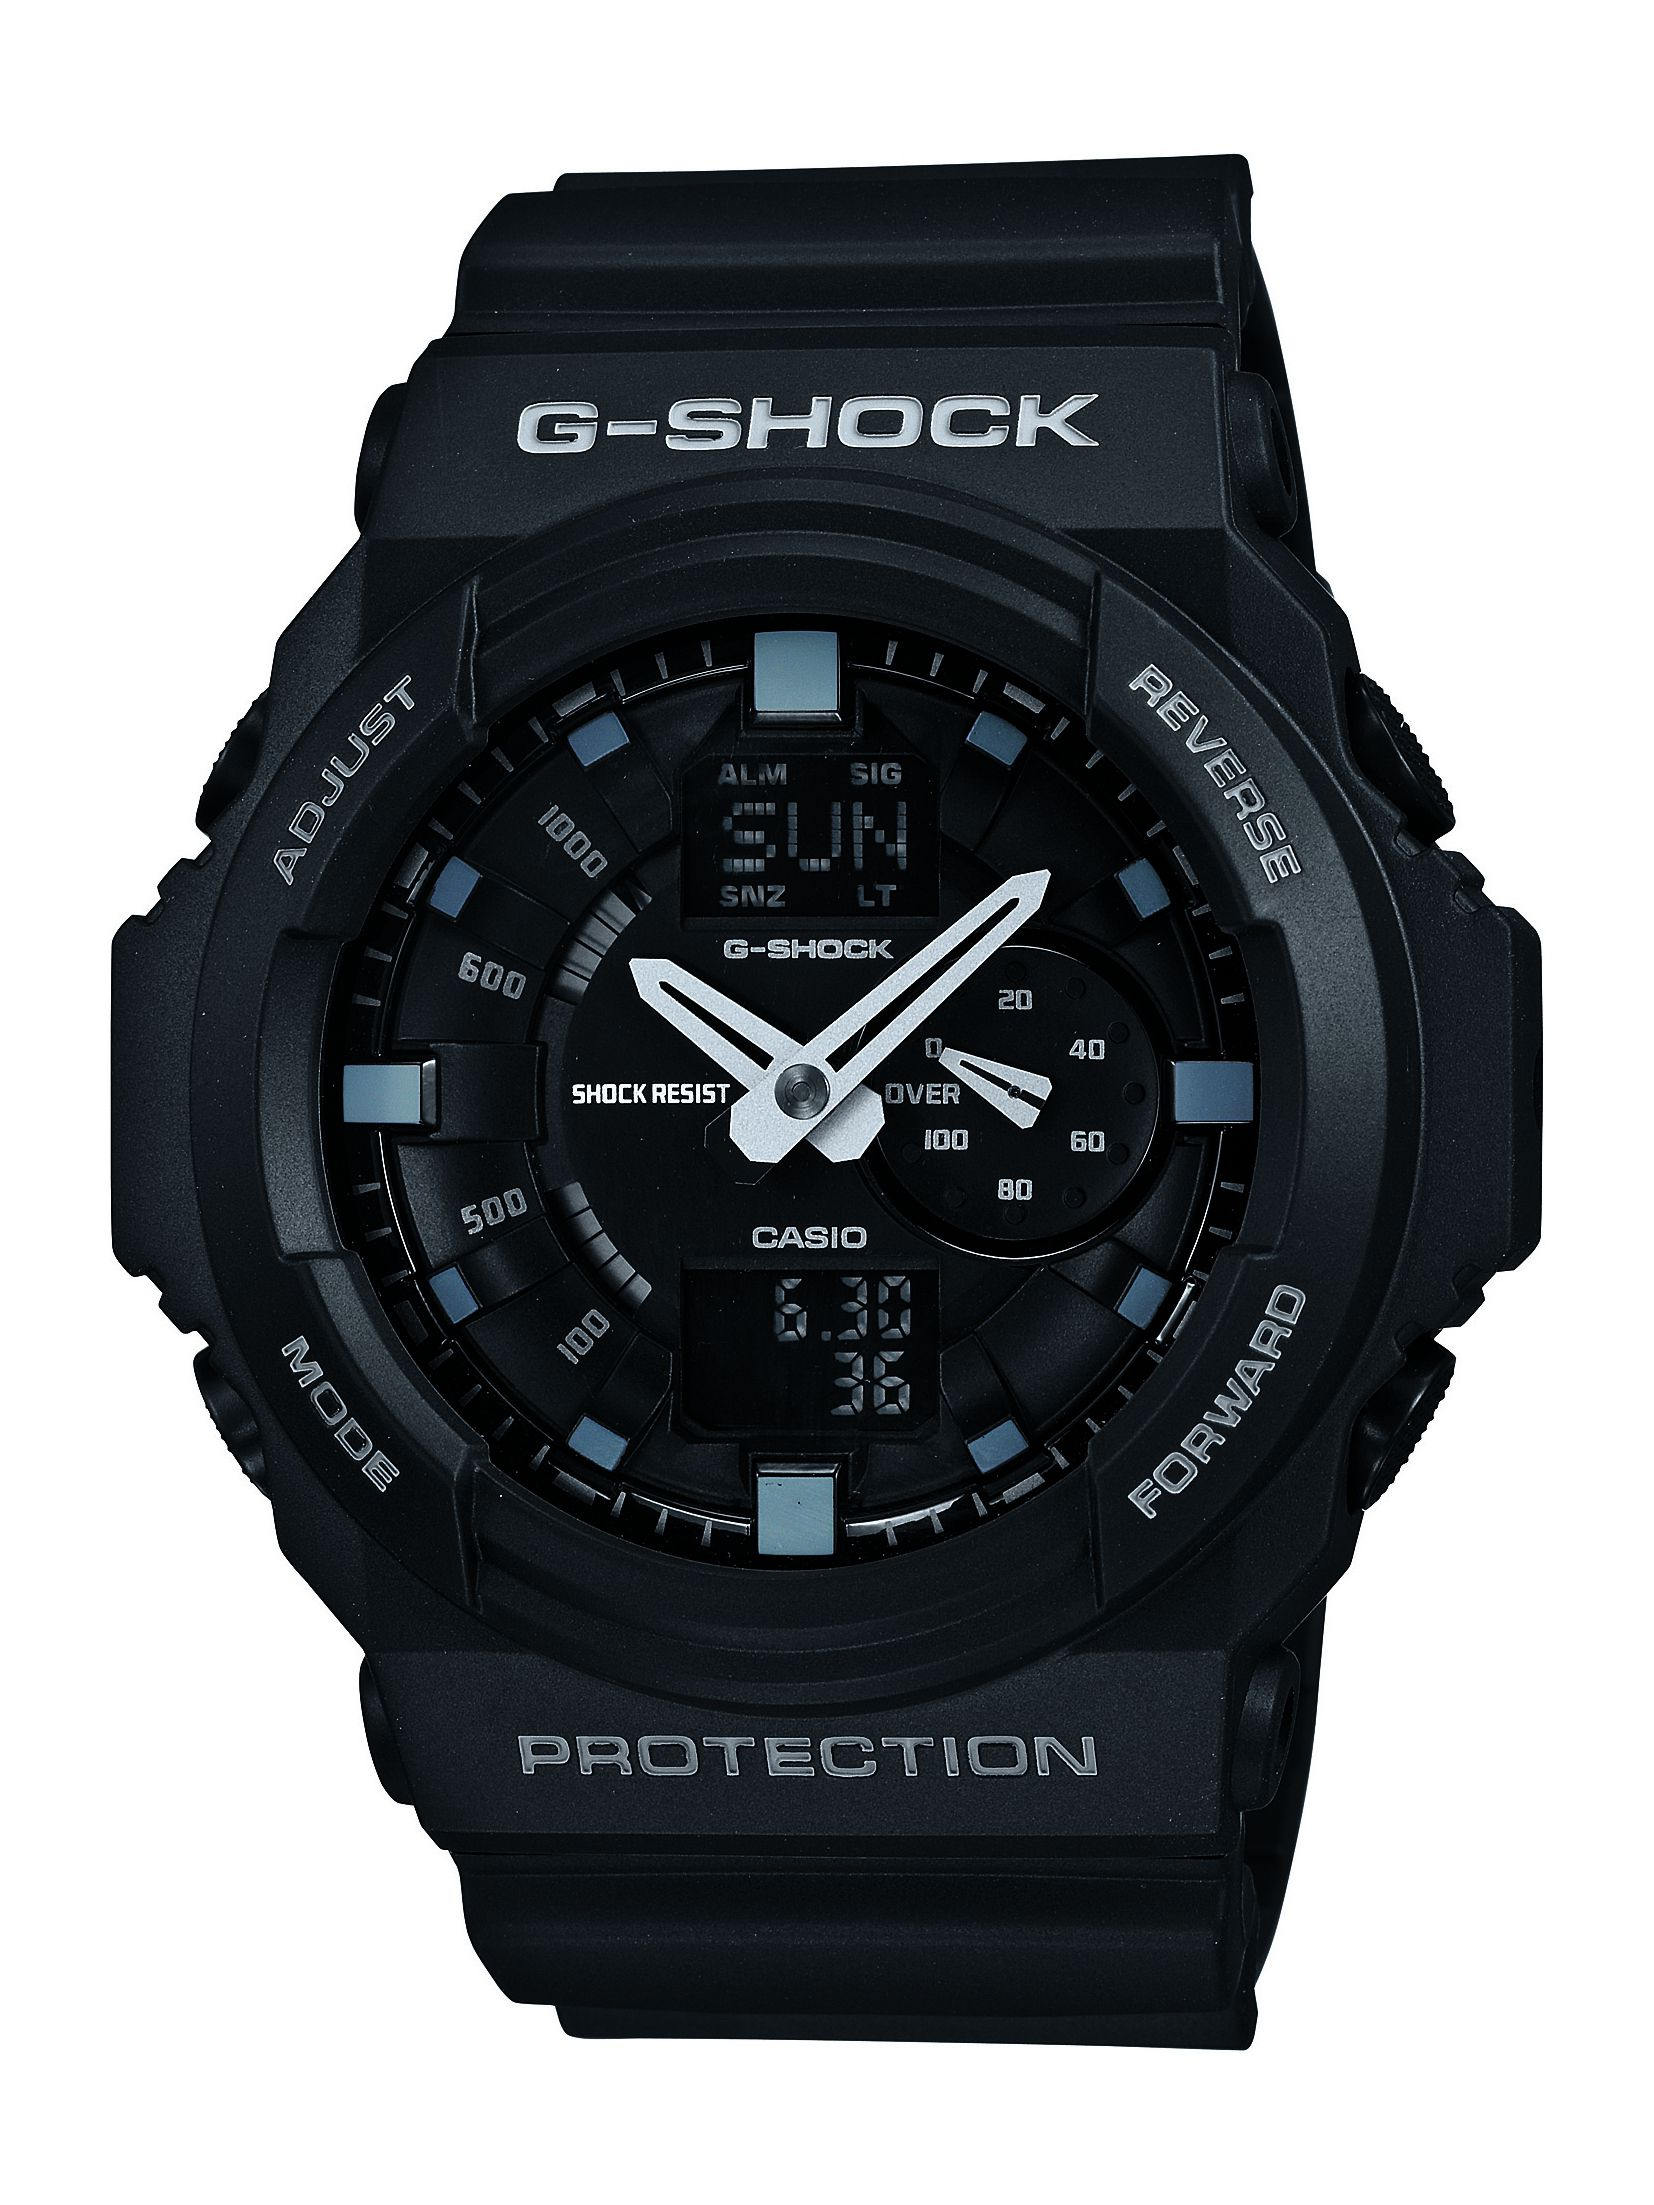 G-Shock GA-150-1AER black sports mens watch